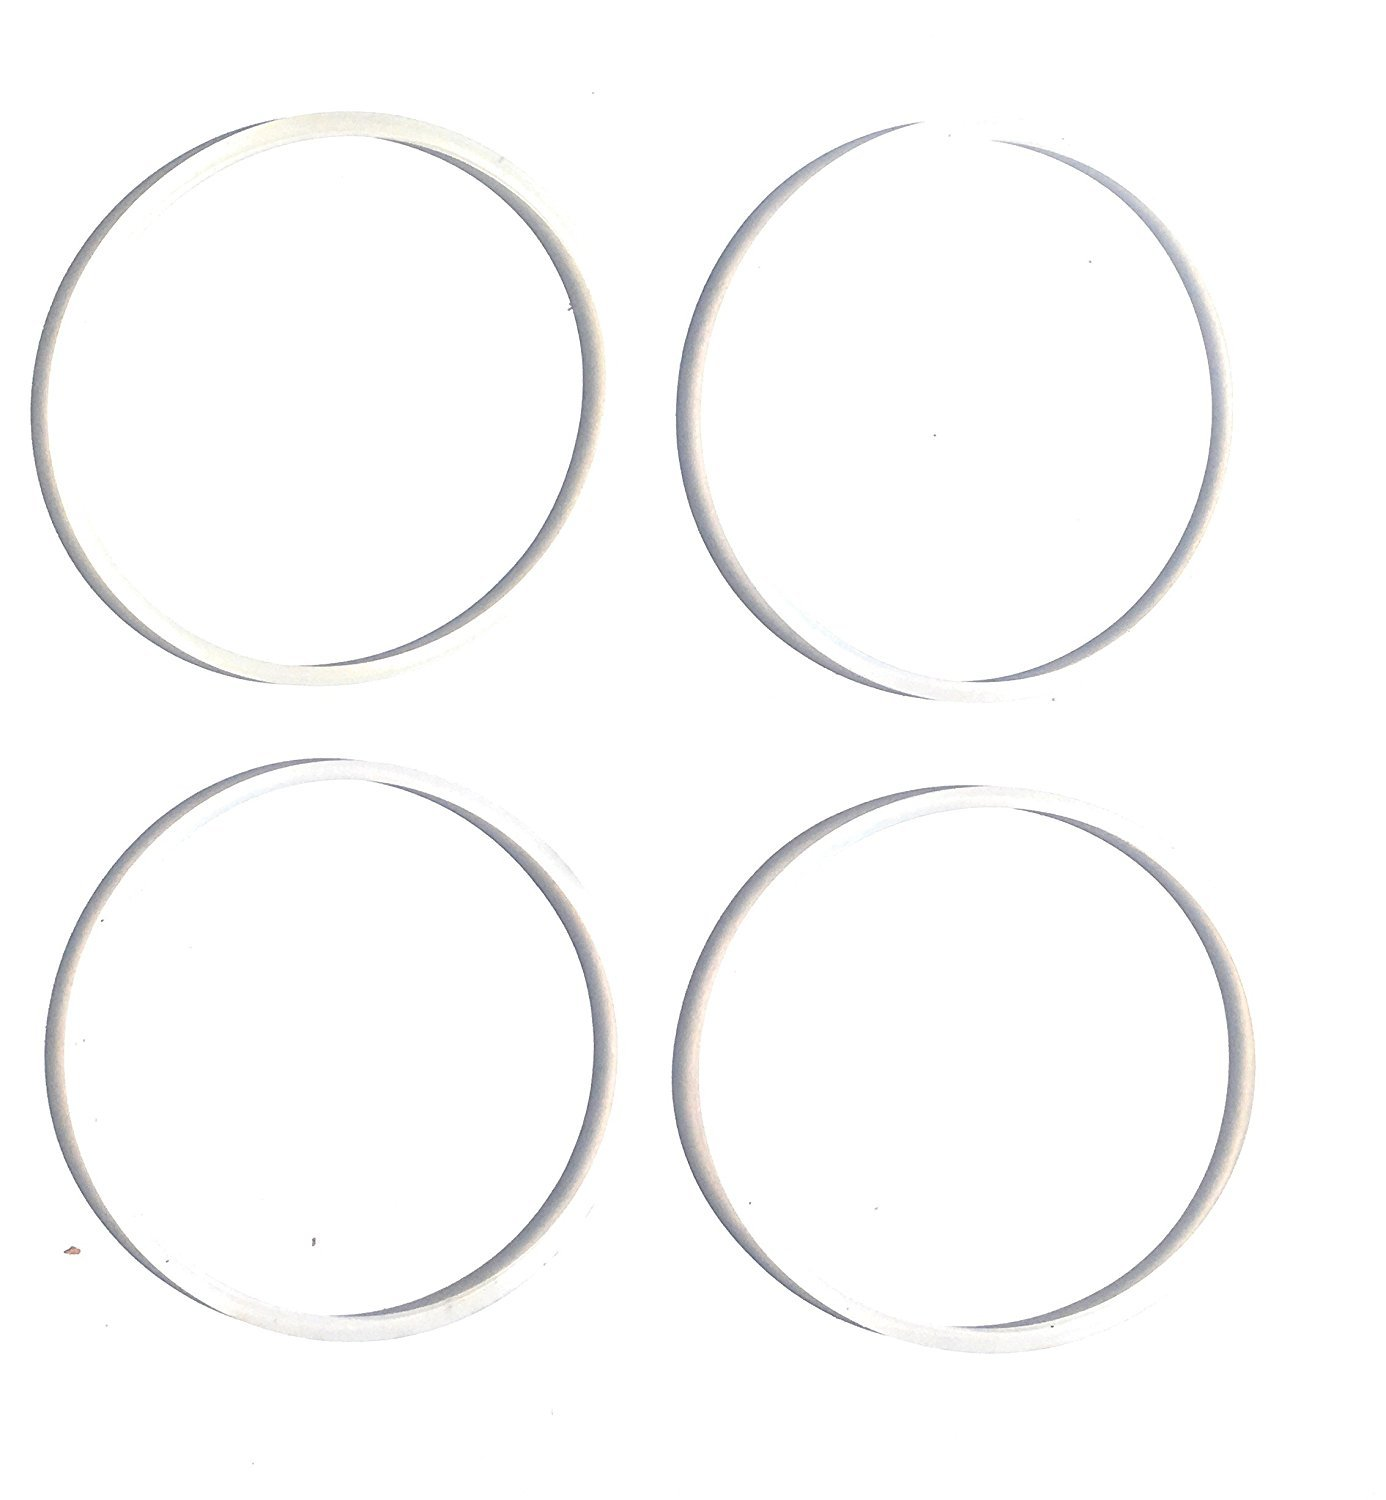 Fab International 4 Pack Replacement Gasket Compatible with Cooks 5-in-1 Power Blender Gaskets (AFTER MARKET PART)